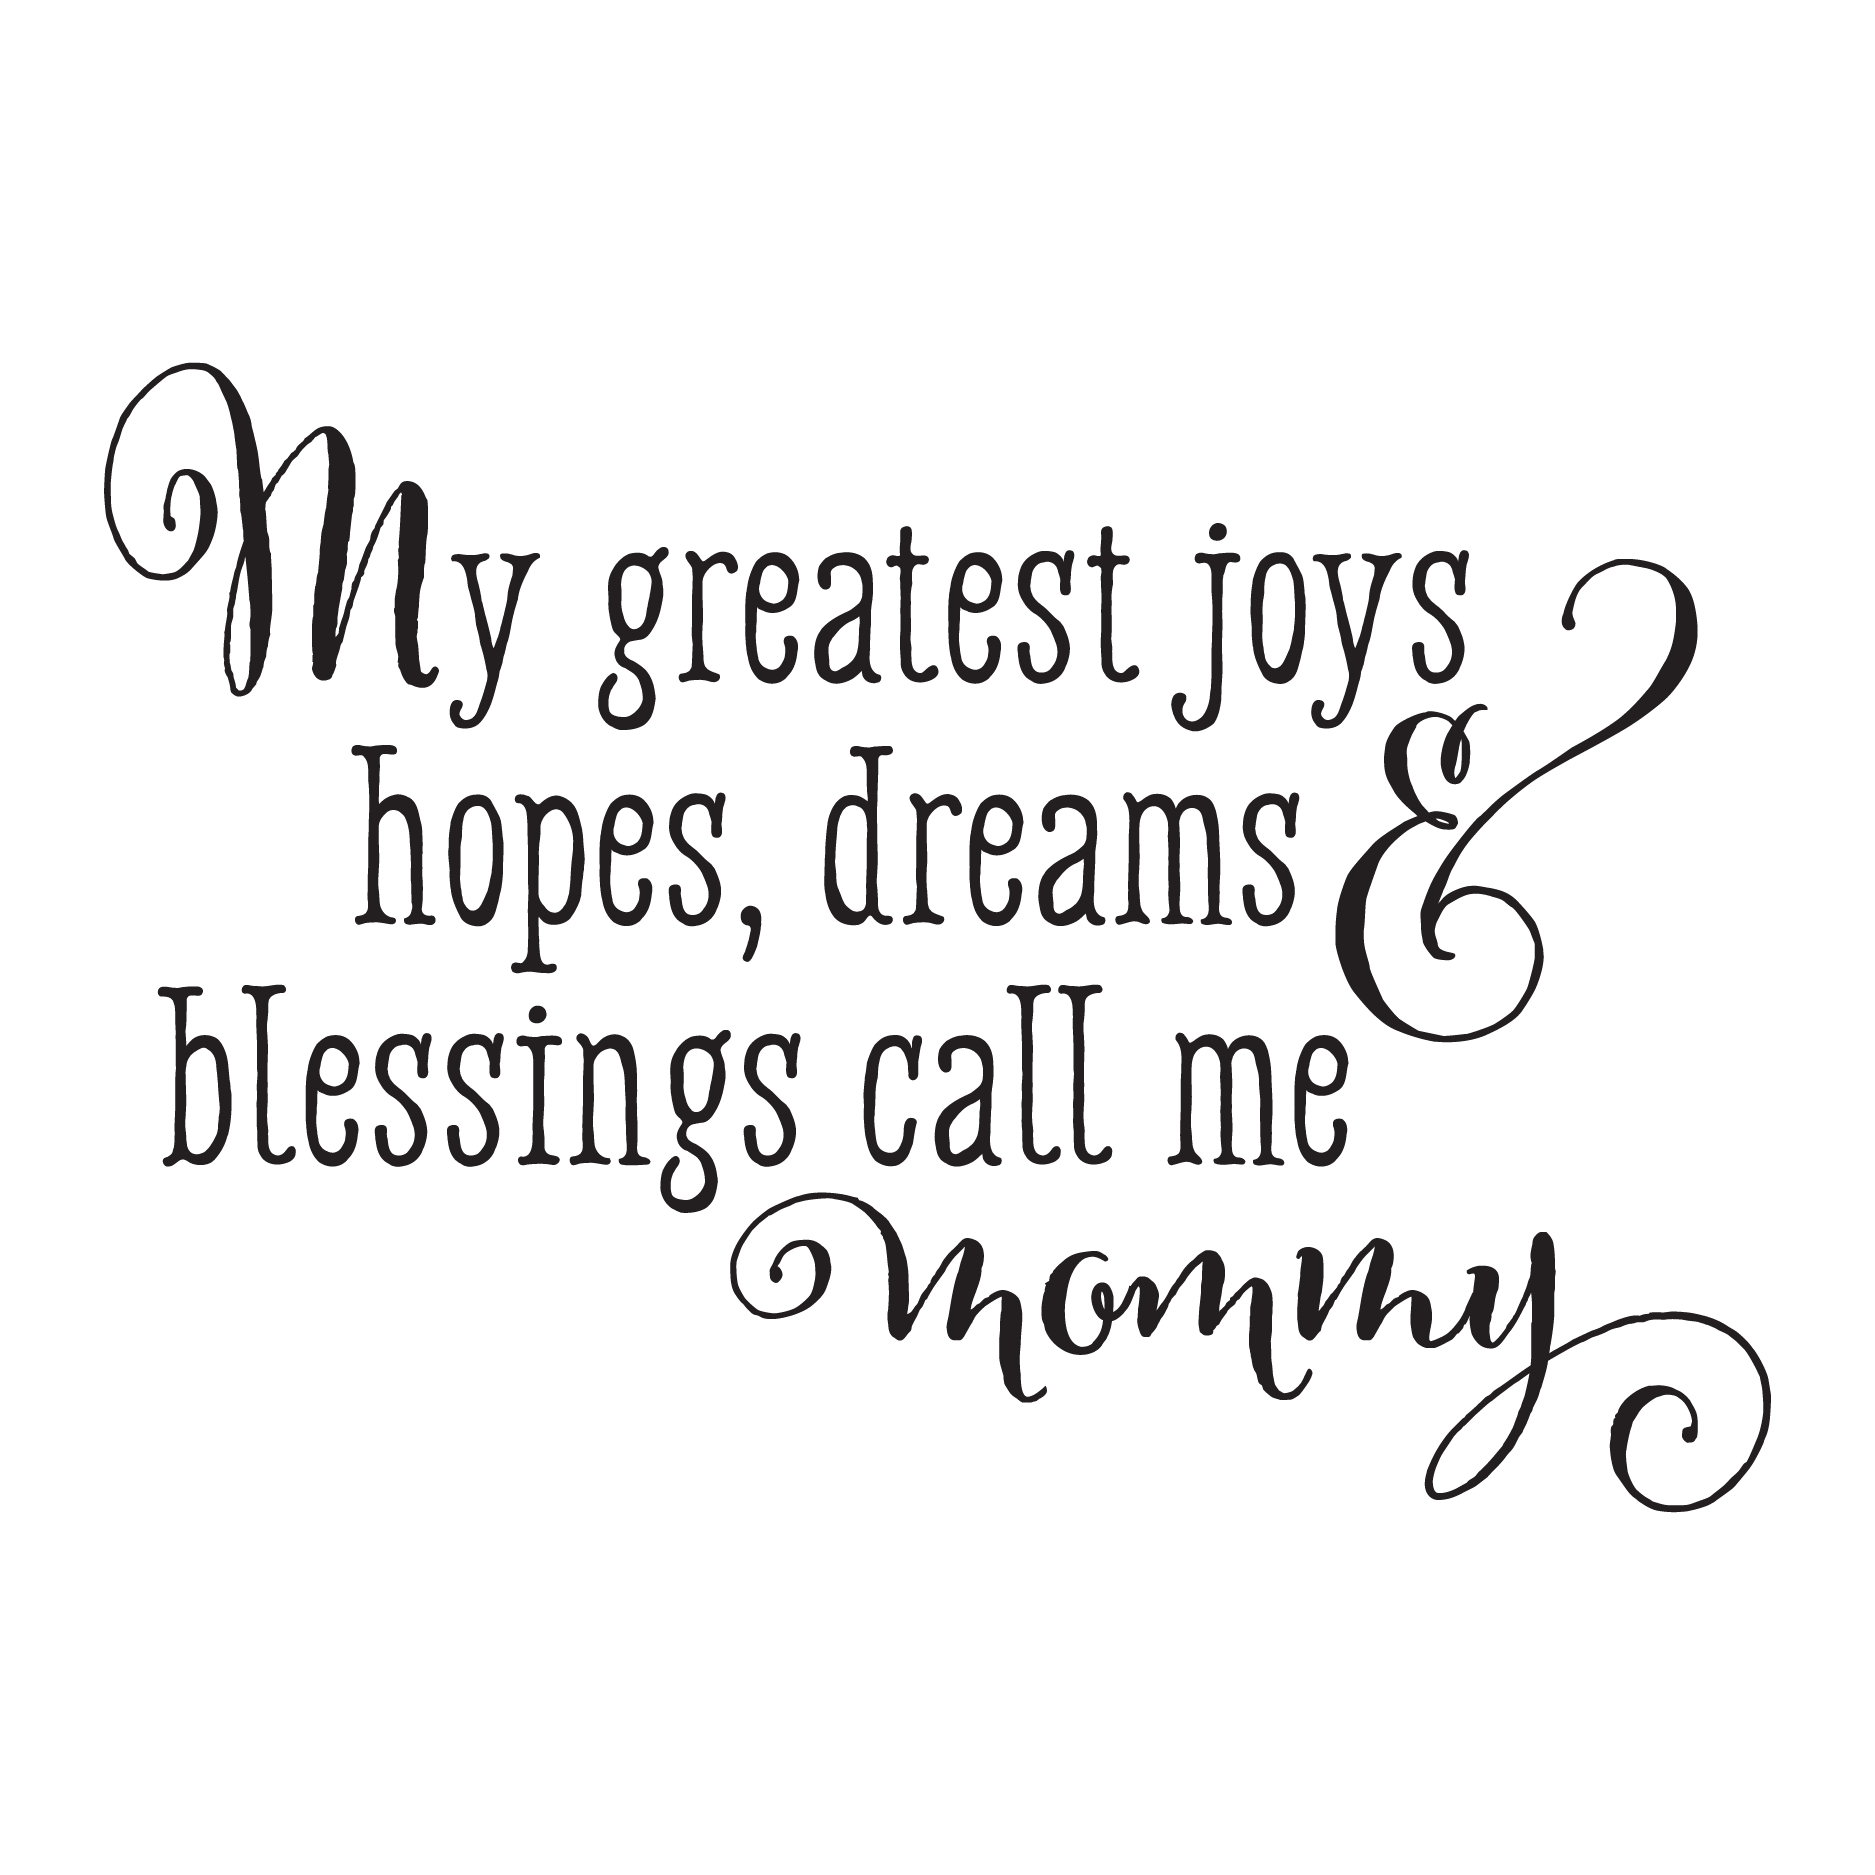 Quote About Sons And Mothers: Greatests Joys Call Me Mommy Wall Quotes™ Decal